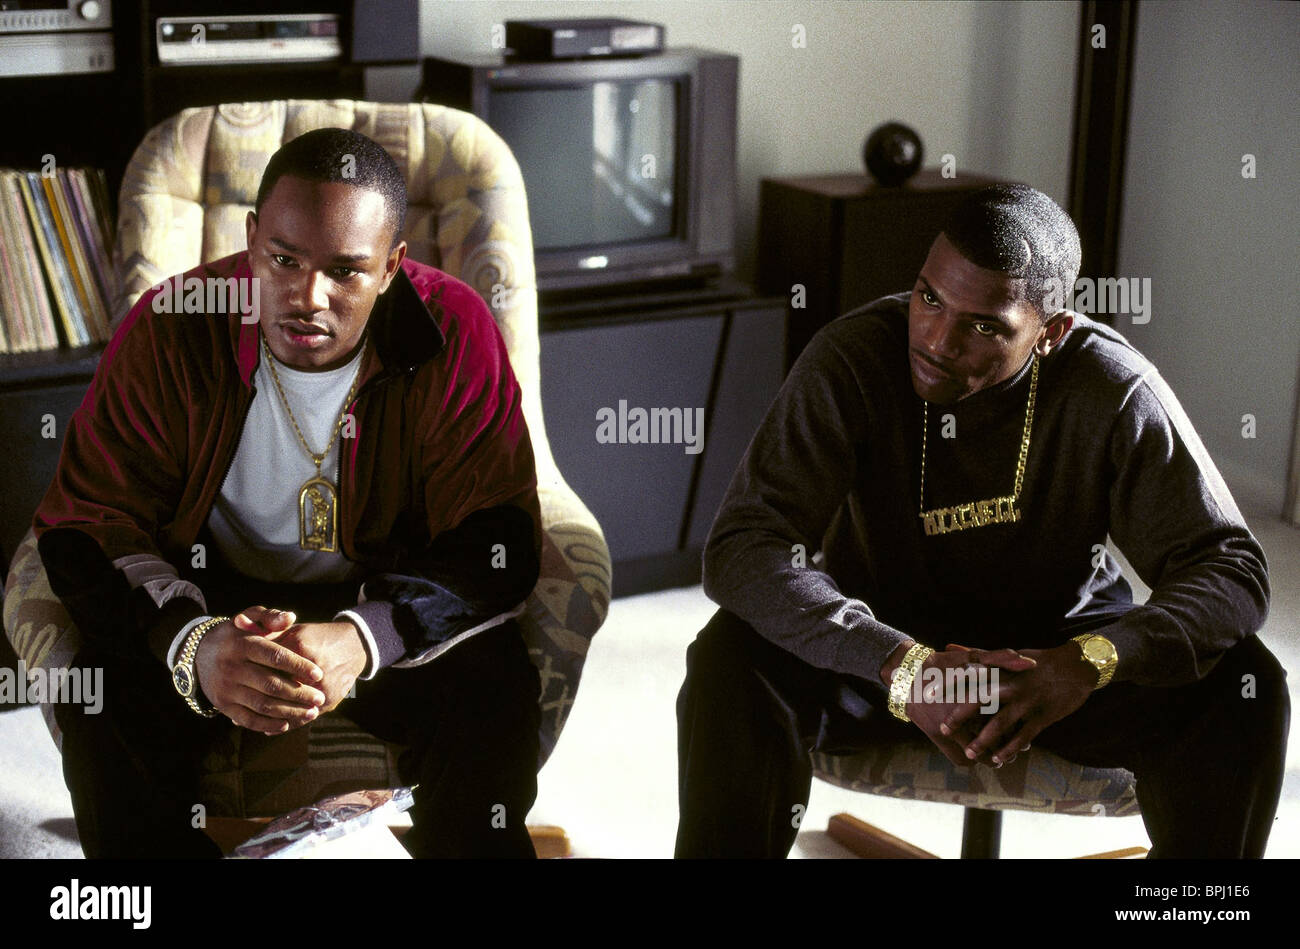 Paid In Full Picture Quotes: Mekhi Phifer Paid In Full Stock Photos & Mekhi Phifer Paid